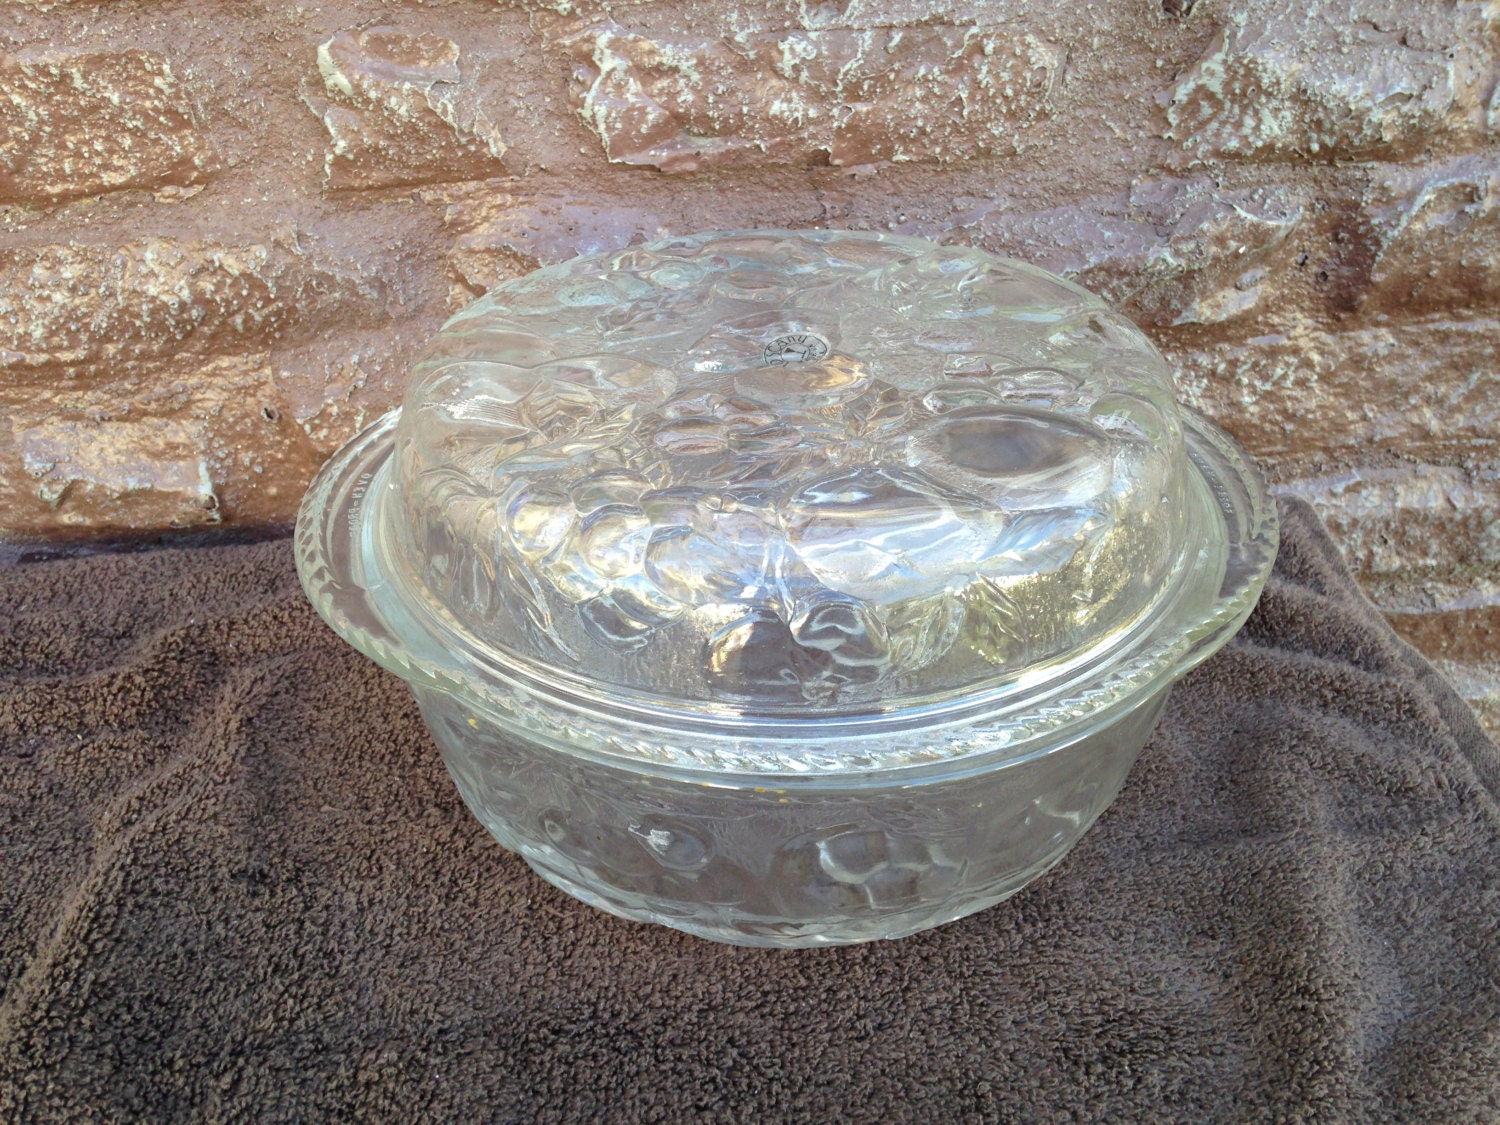 Toscany Embossed Casserole Dish With Lid Embossed Fruit